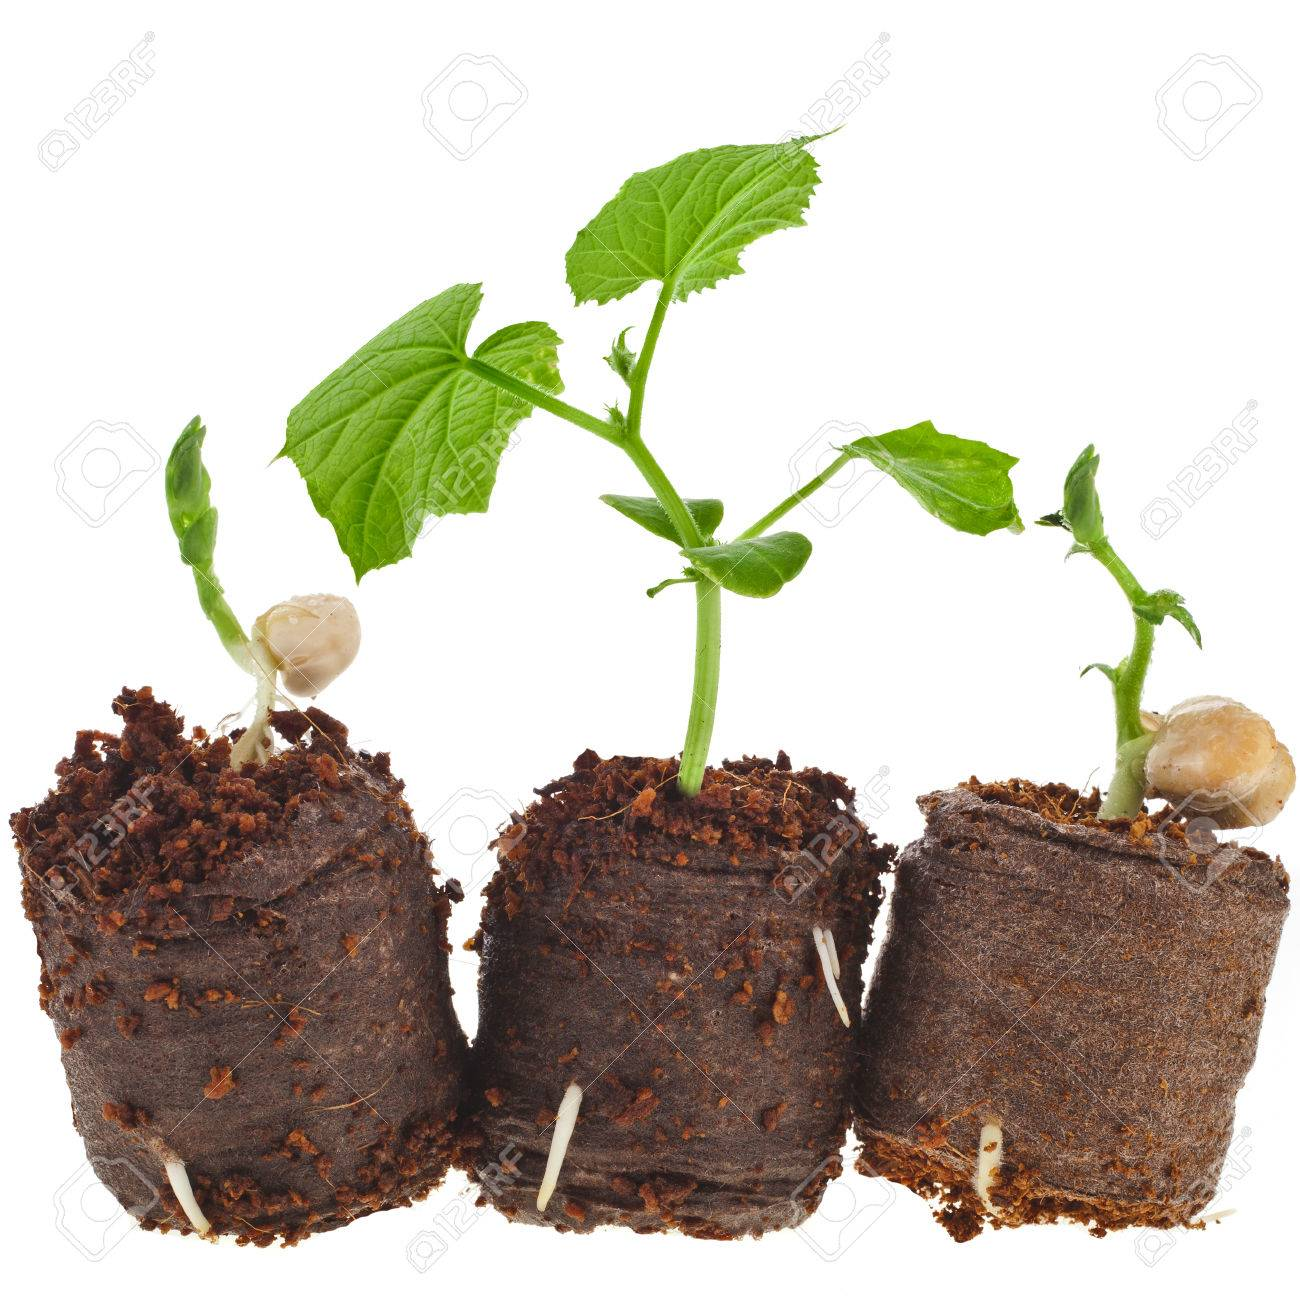 How to use peat tablets for seedlings